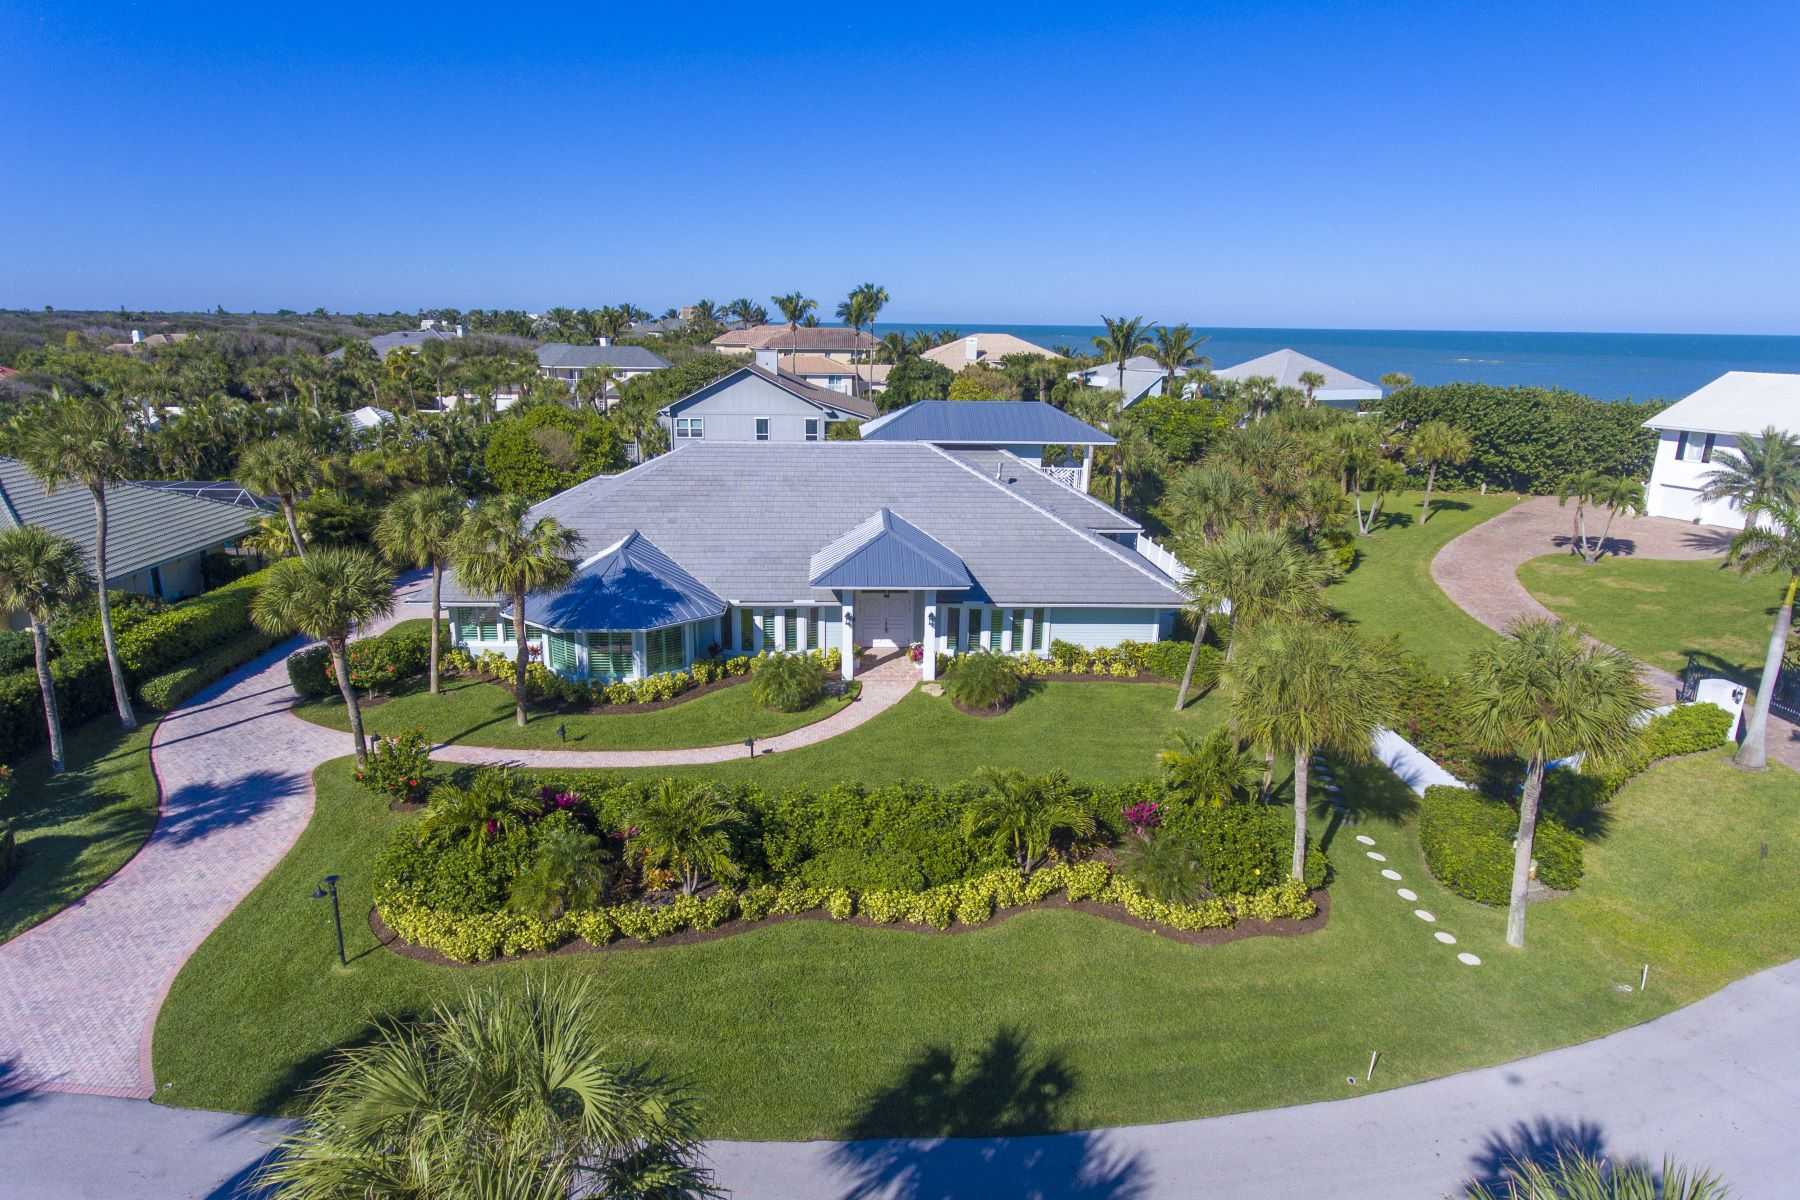 Single Family Homes for Sale at 909 Holoma Drive, Vero Beach, FL 909 Holoma Drive Vero Beach, Florida 32963 United States